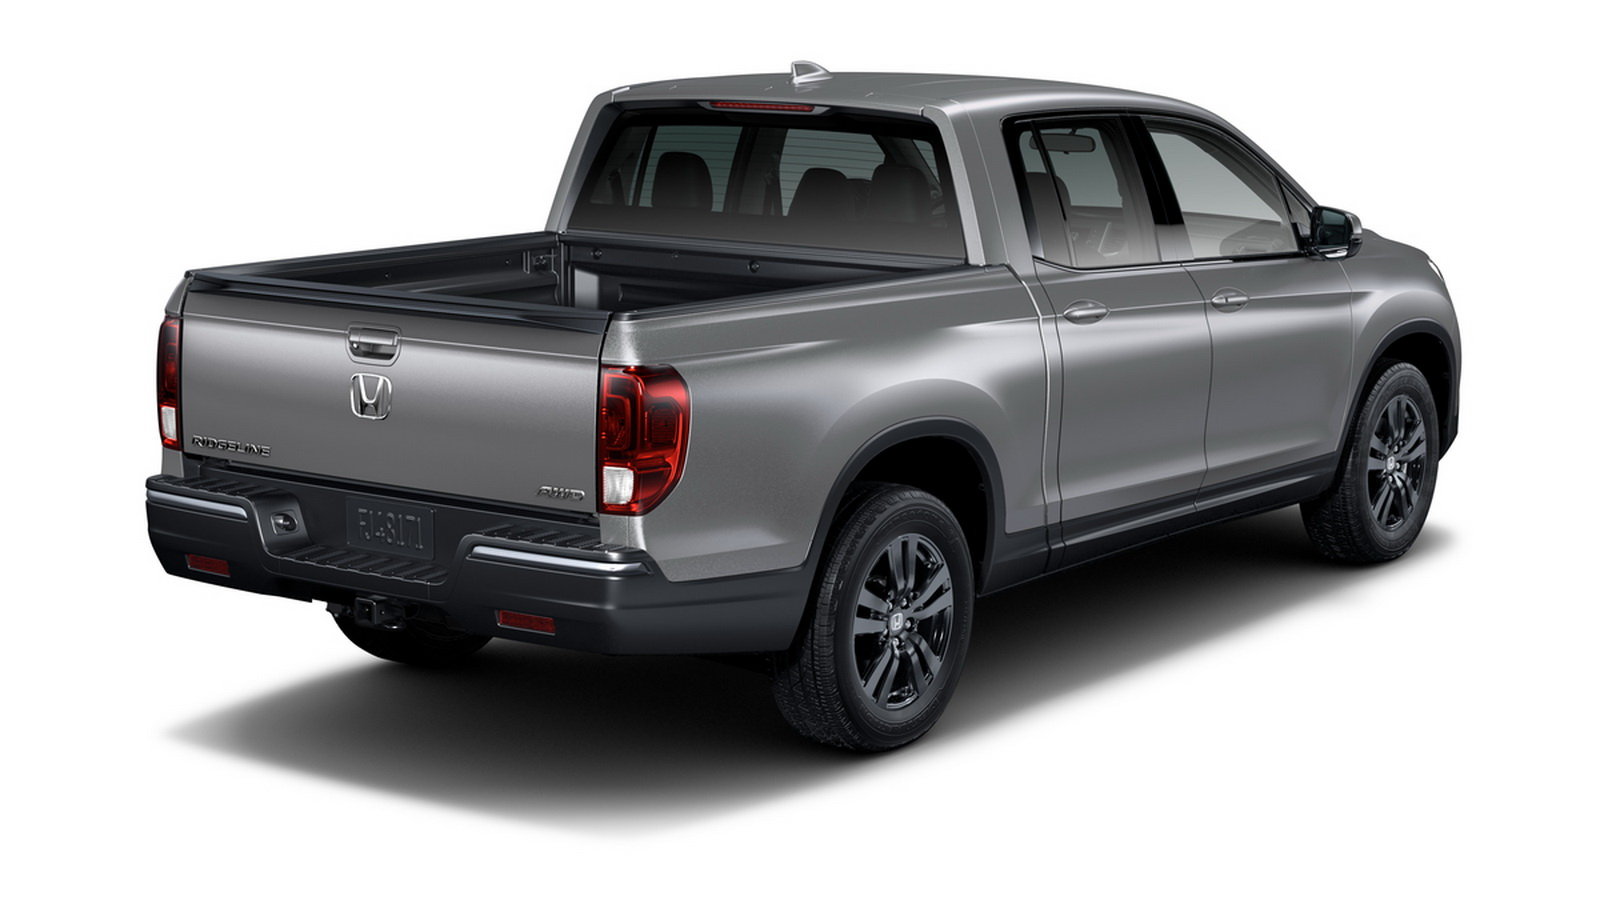 2018 Honda Ridgeline Priced From $29,630, Adds Two New Color Choices | Carscoops